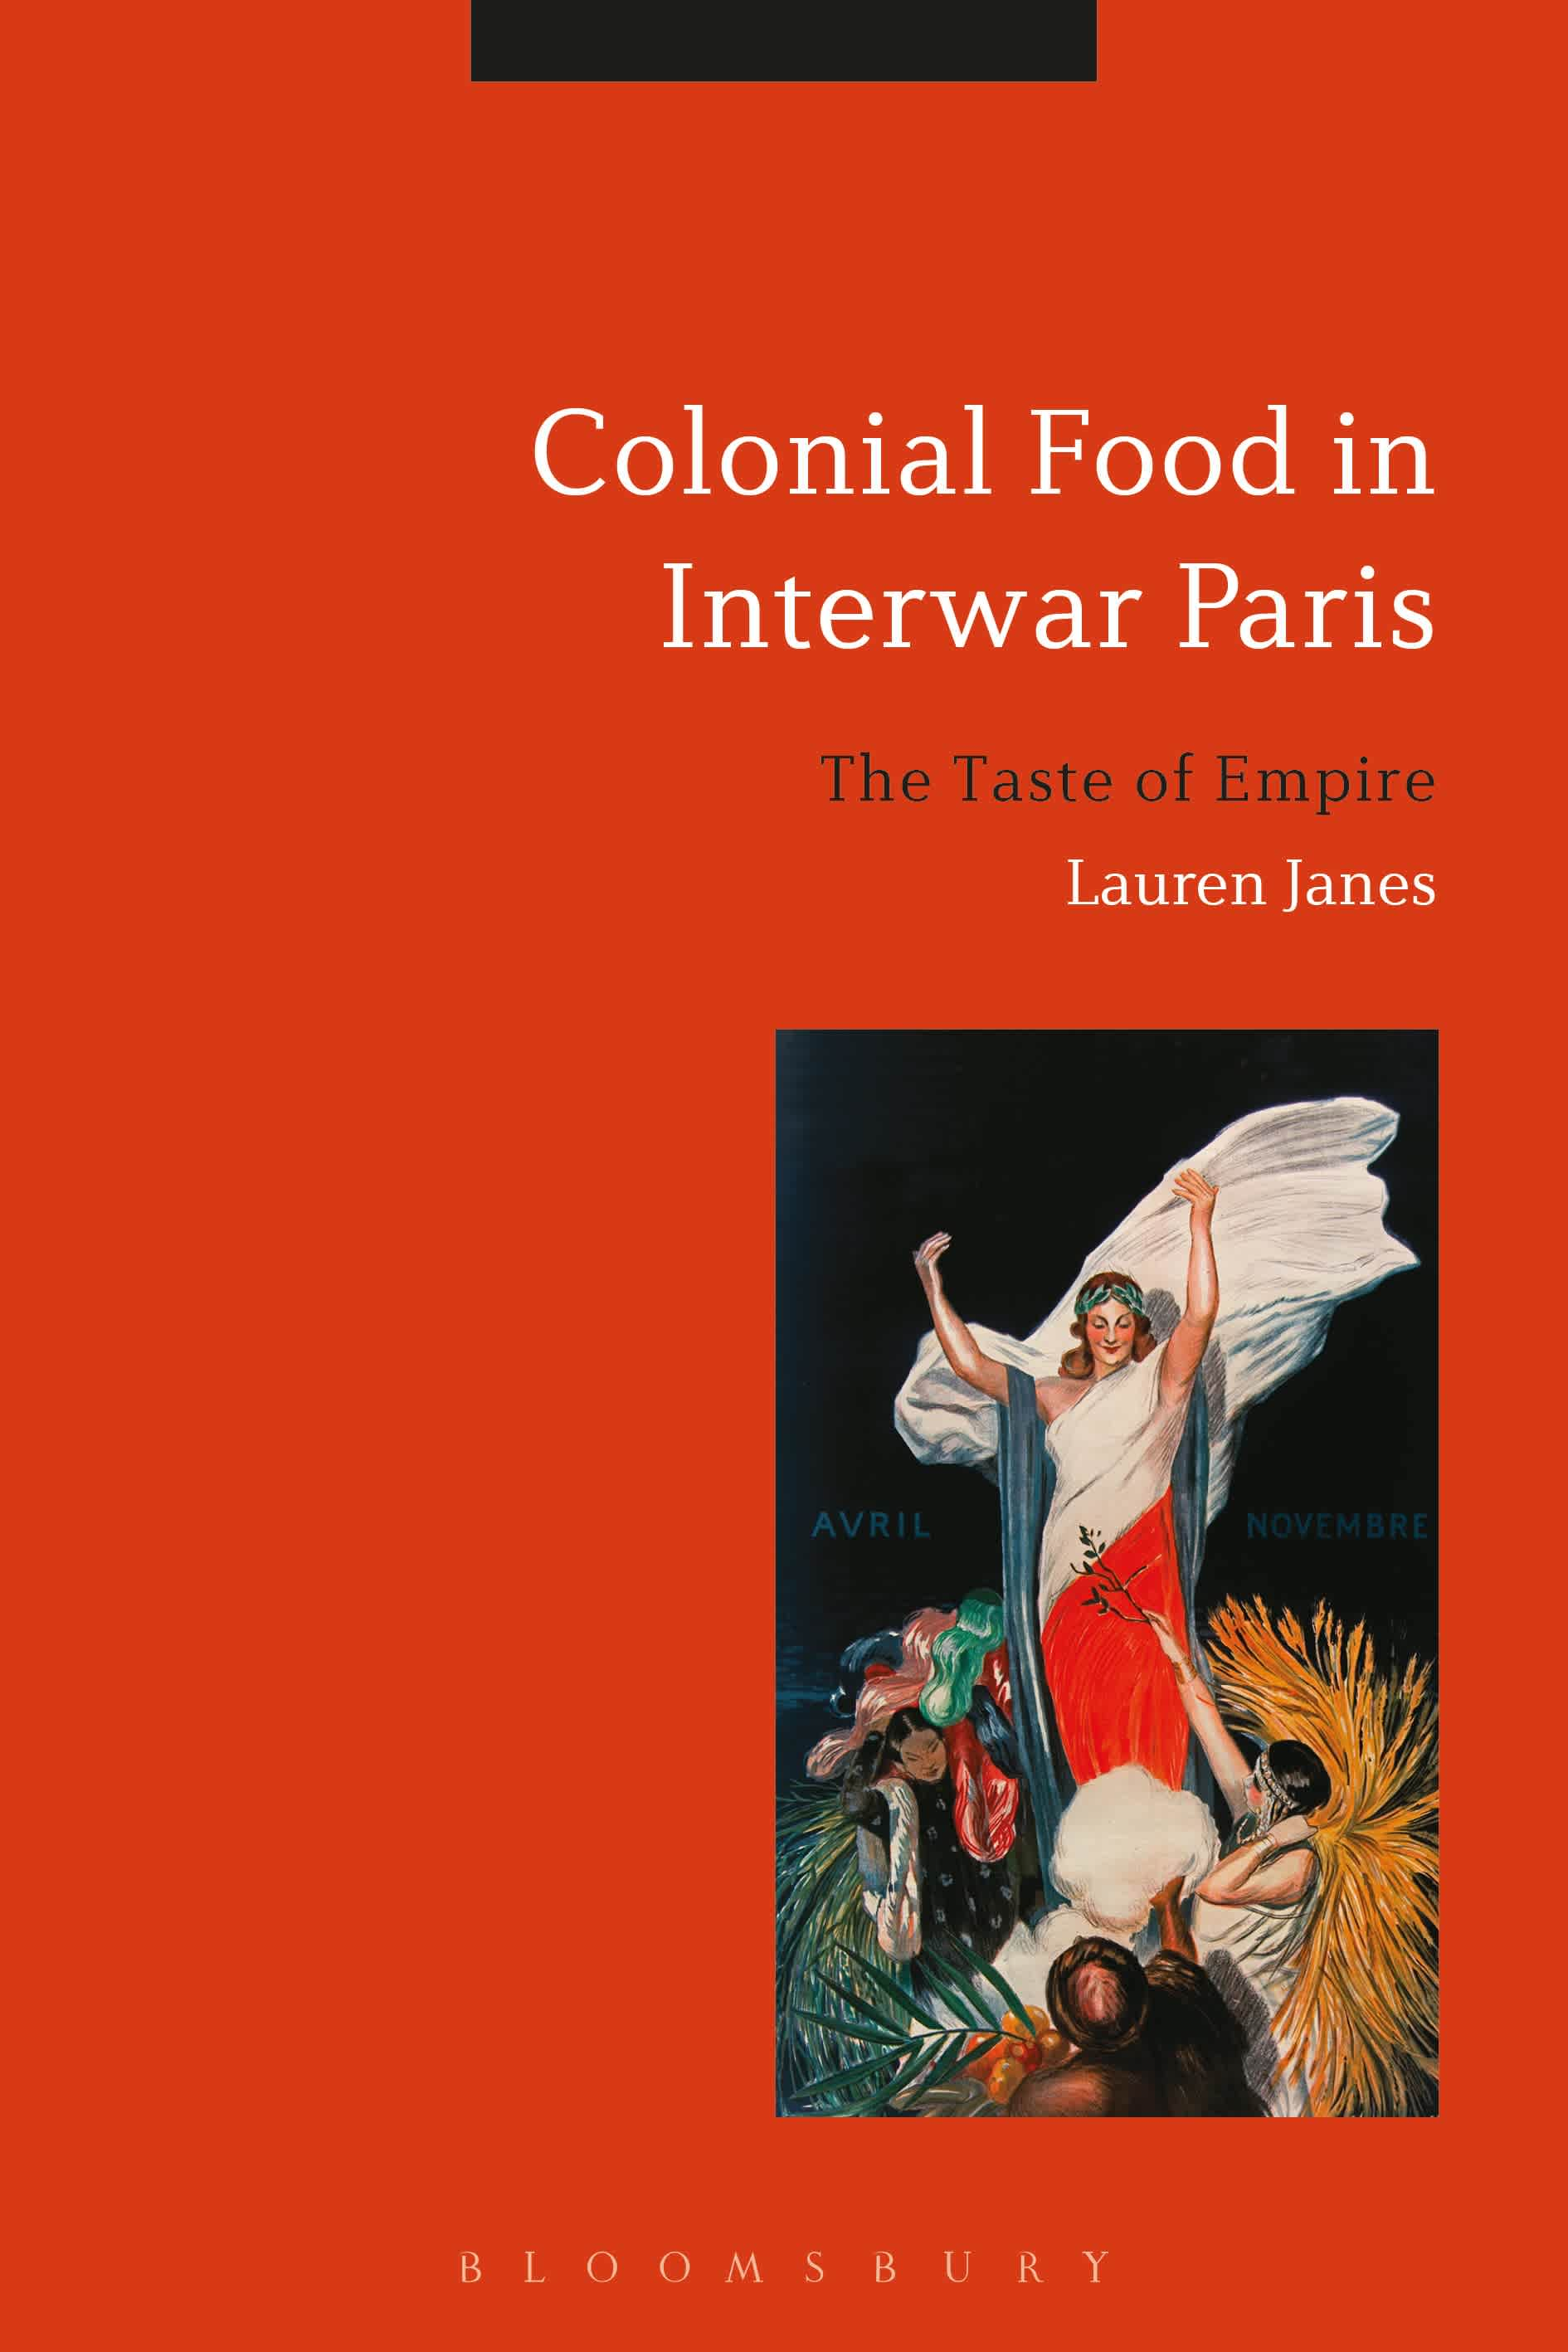 The cover of Colonial Food in Interwar Paris.